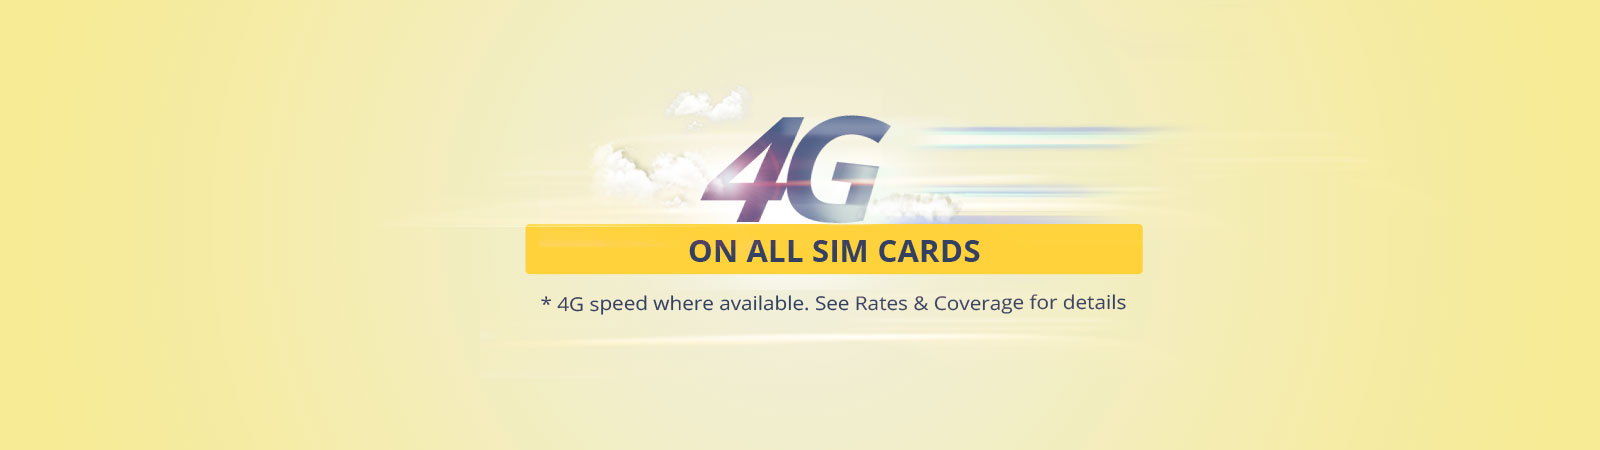 4G international roaming SIM